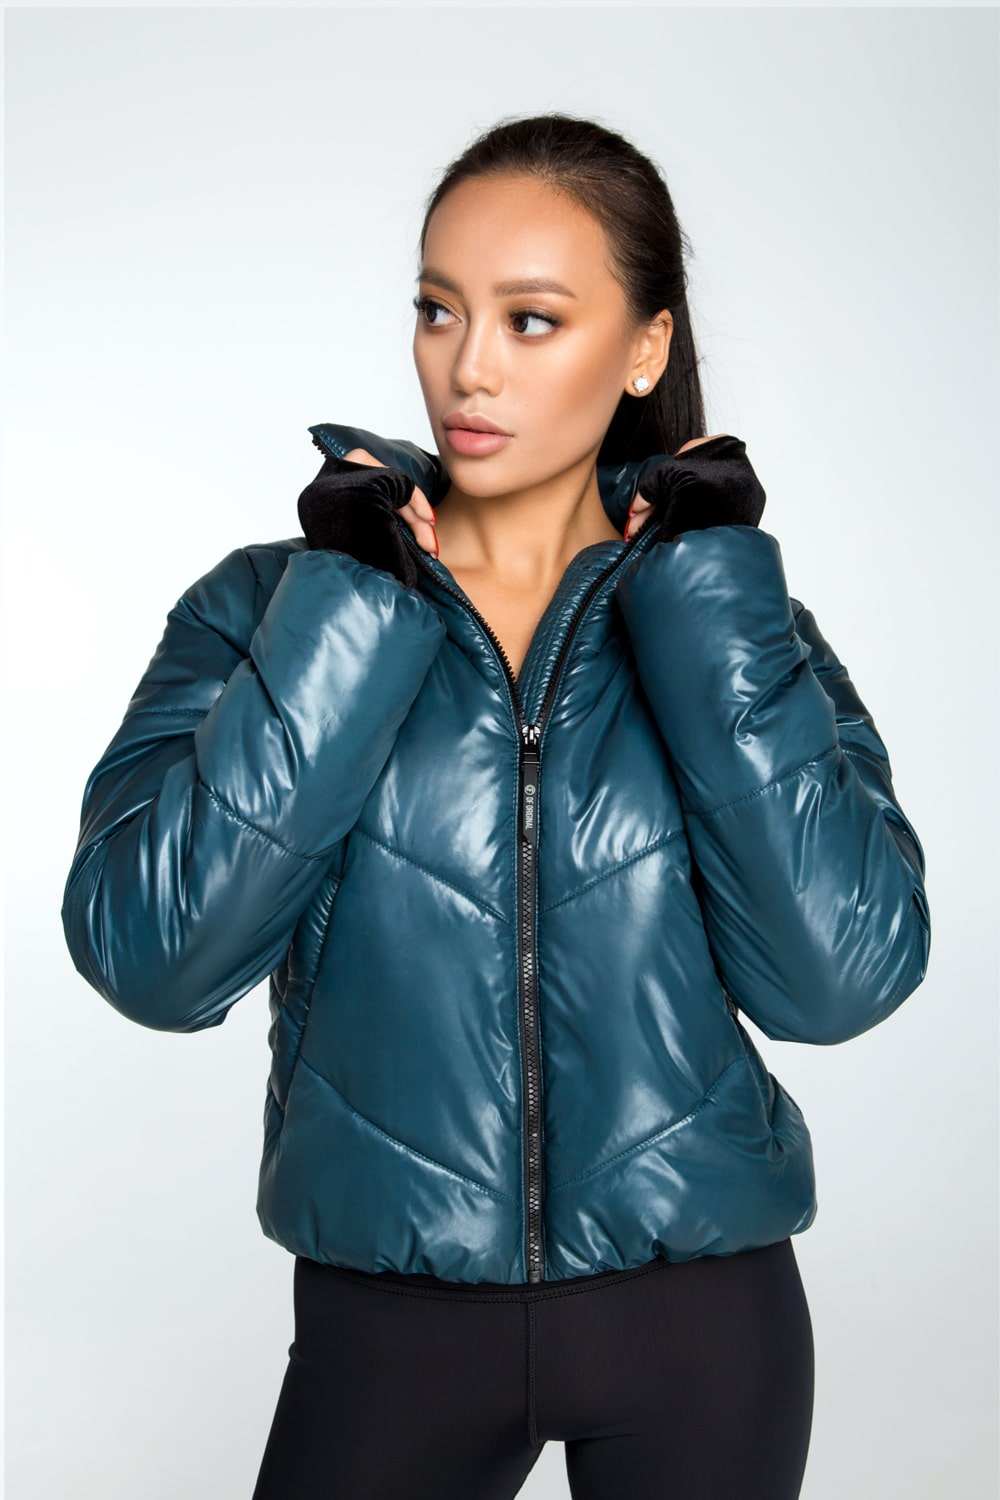 DF ORIGINAL PUFFER SAVANA - Designed for Fitness